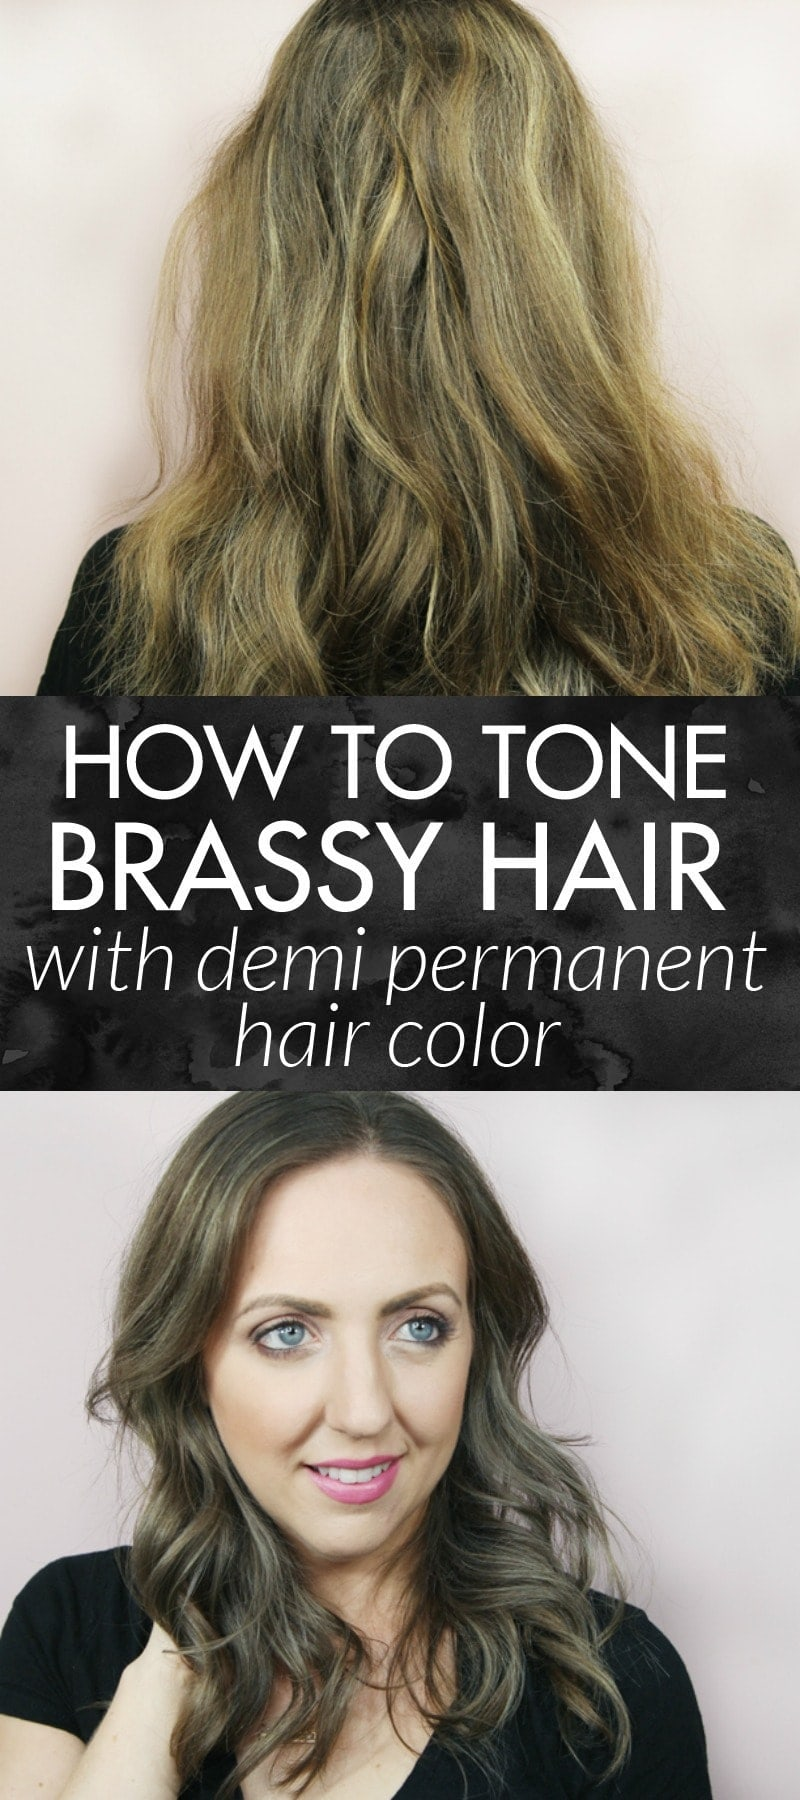 How to Tone Brassy Hair with Demi Permanent Hair Color - toning your hair at home is so easy and only takes 15 minutes!